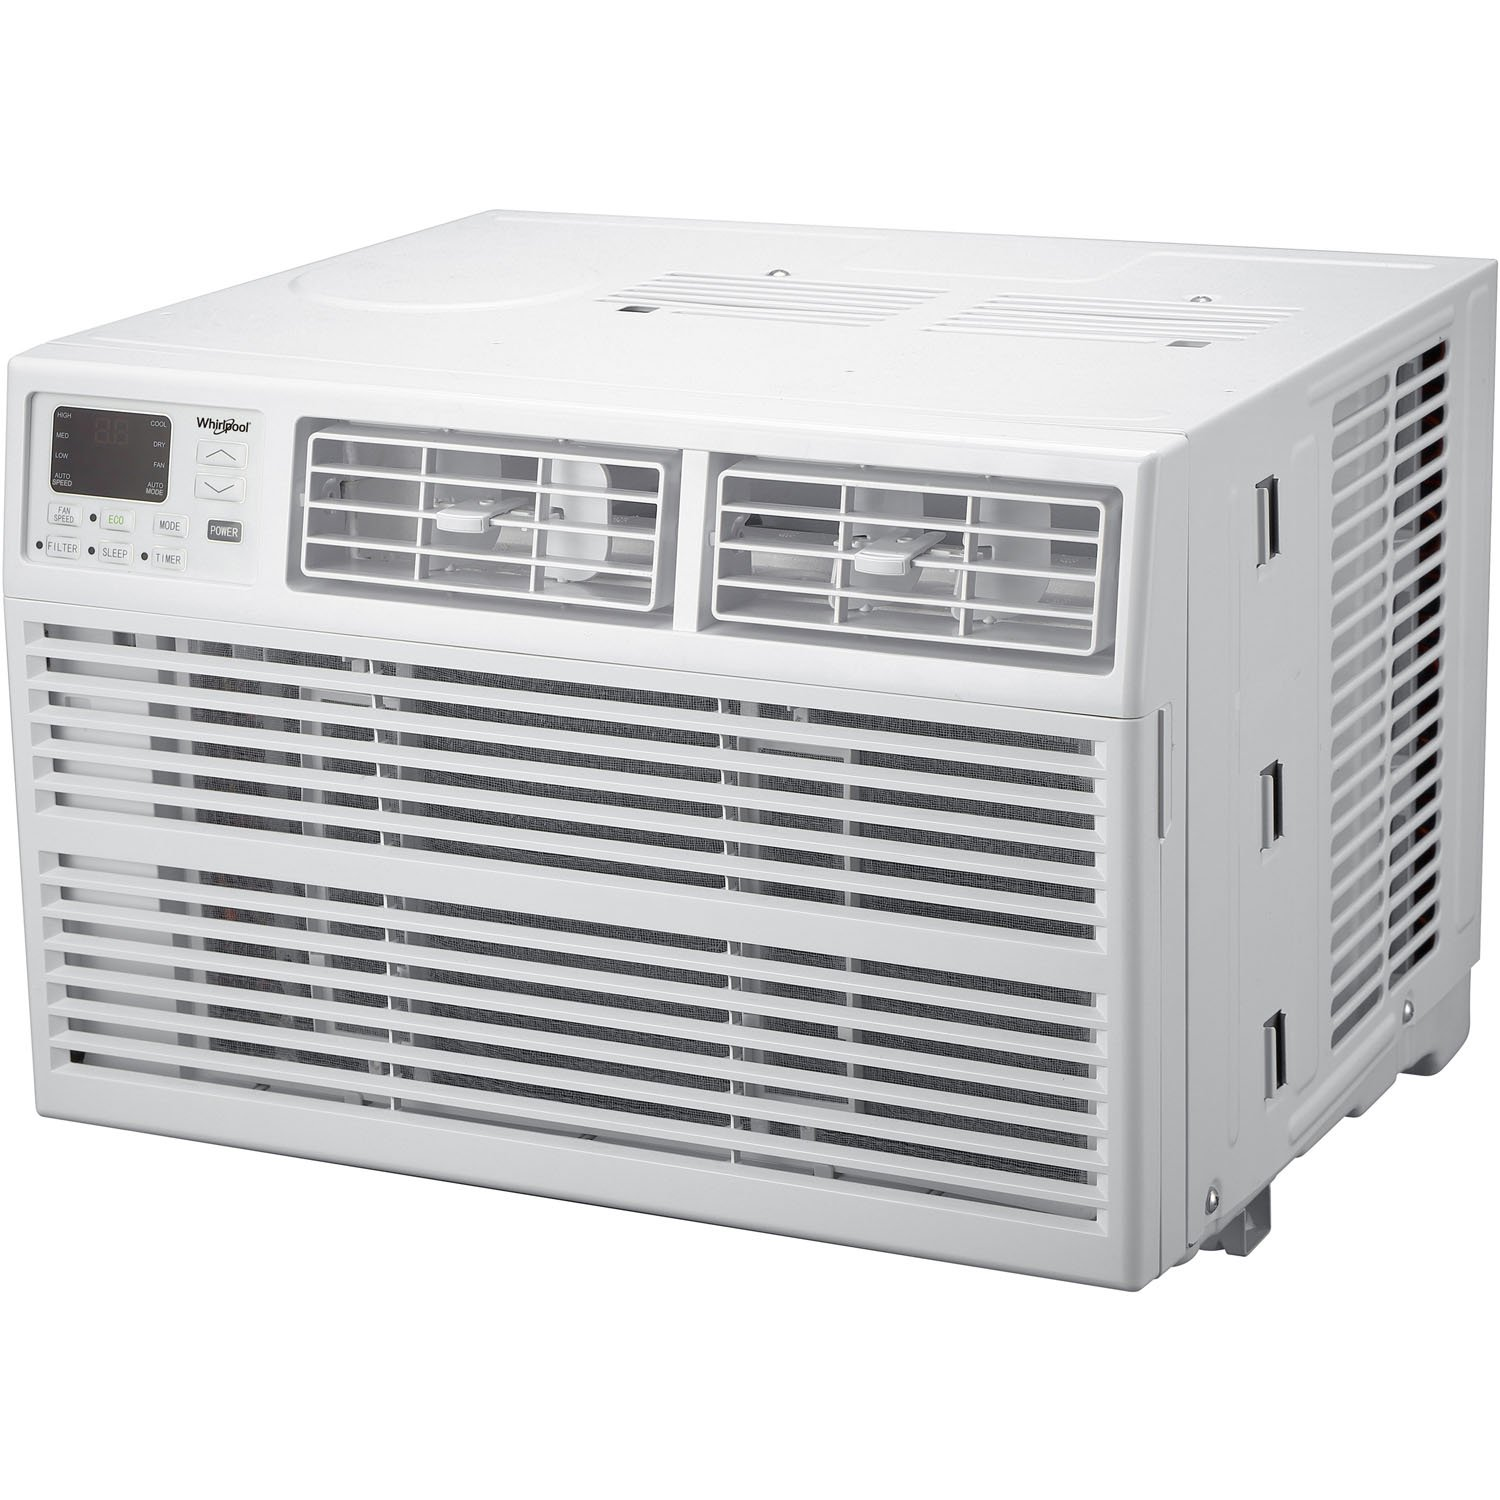 White Whirlpool Energy Star 12,000 BTU 115V Window-Mounted Air Conditioner with Remote Control